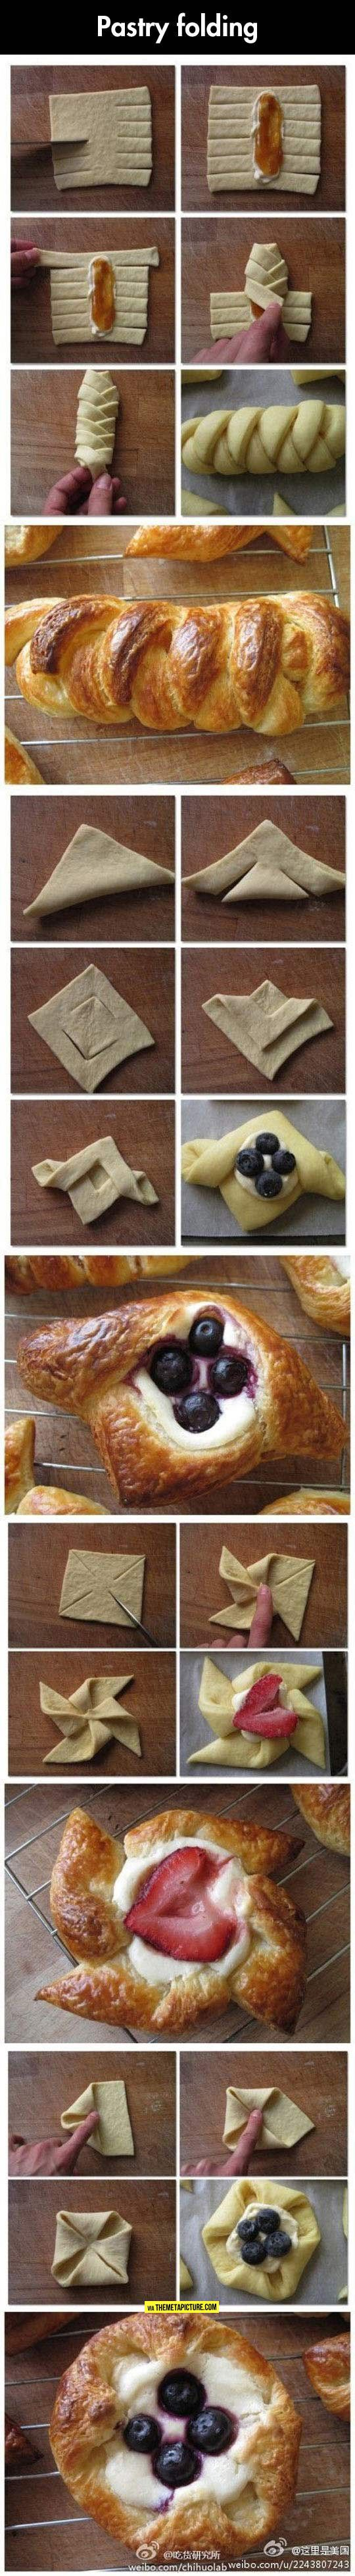 Danish pastry cutting and folding